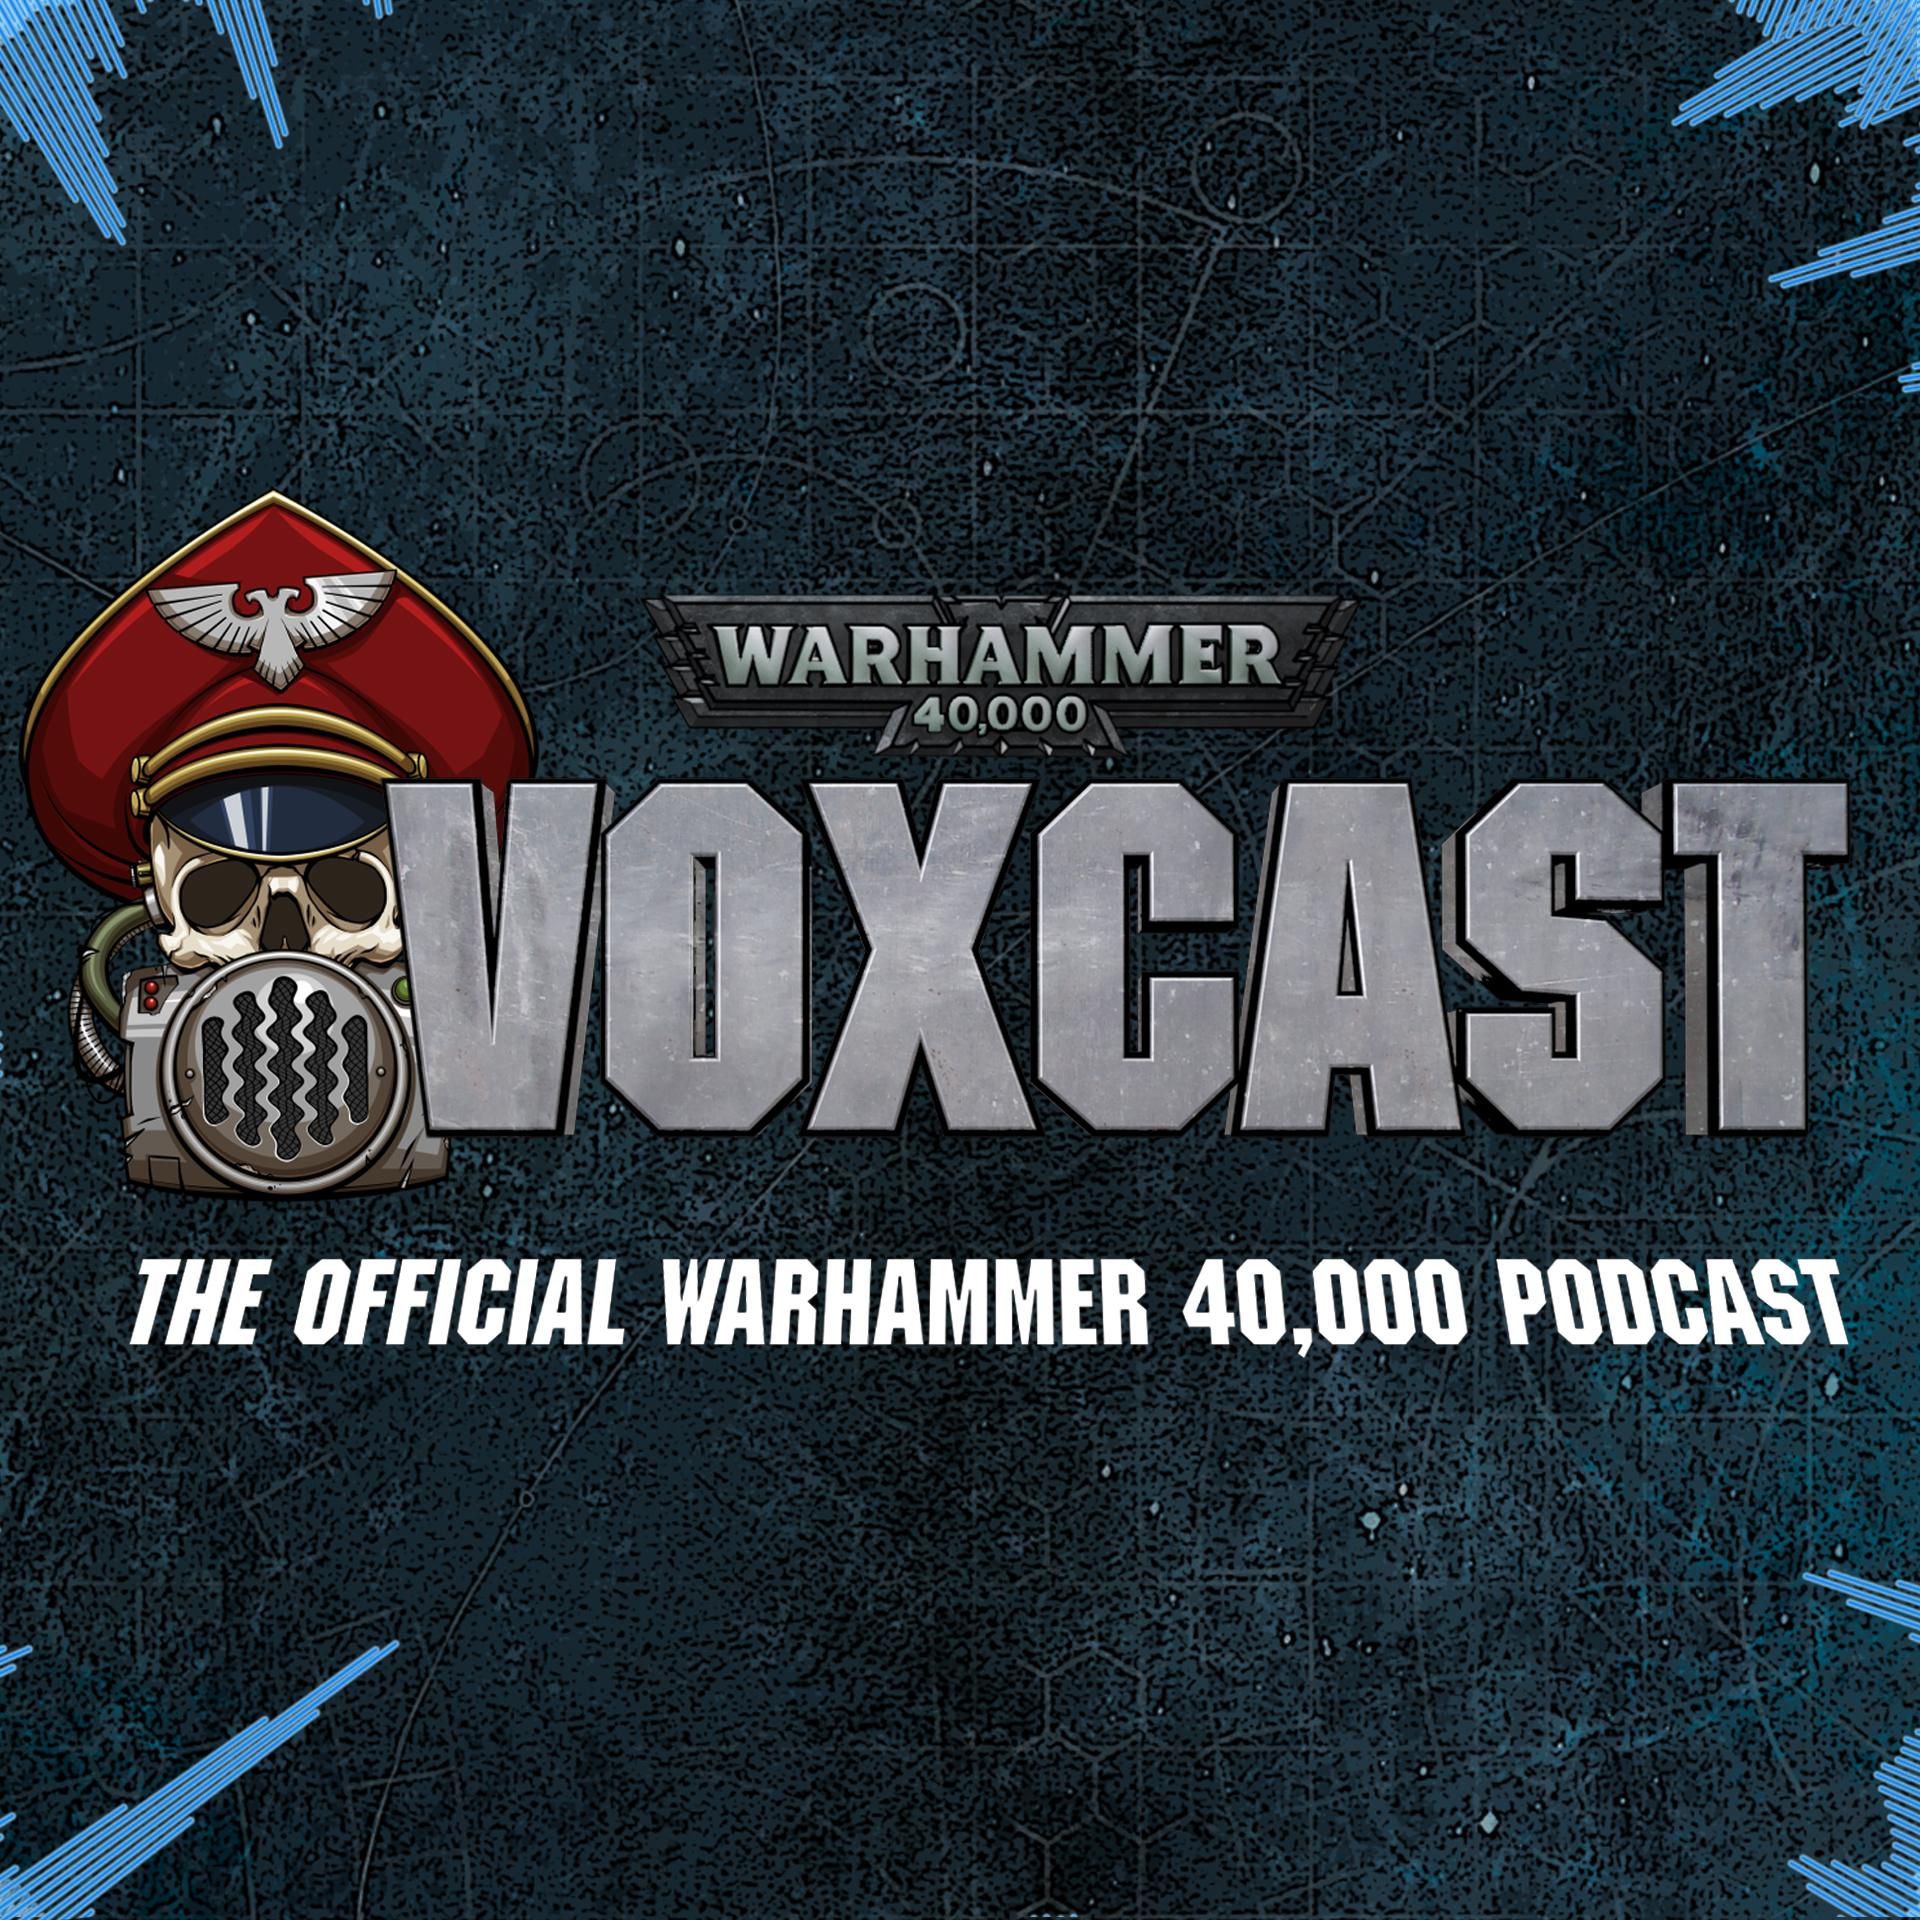 VoxCast: The Official Warhammer 40,000 Podcast show art